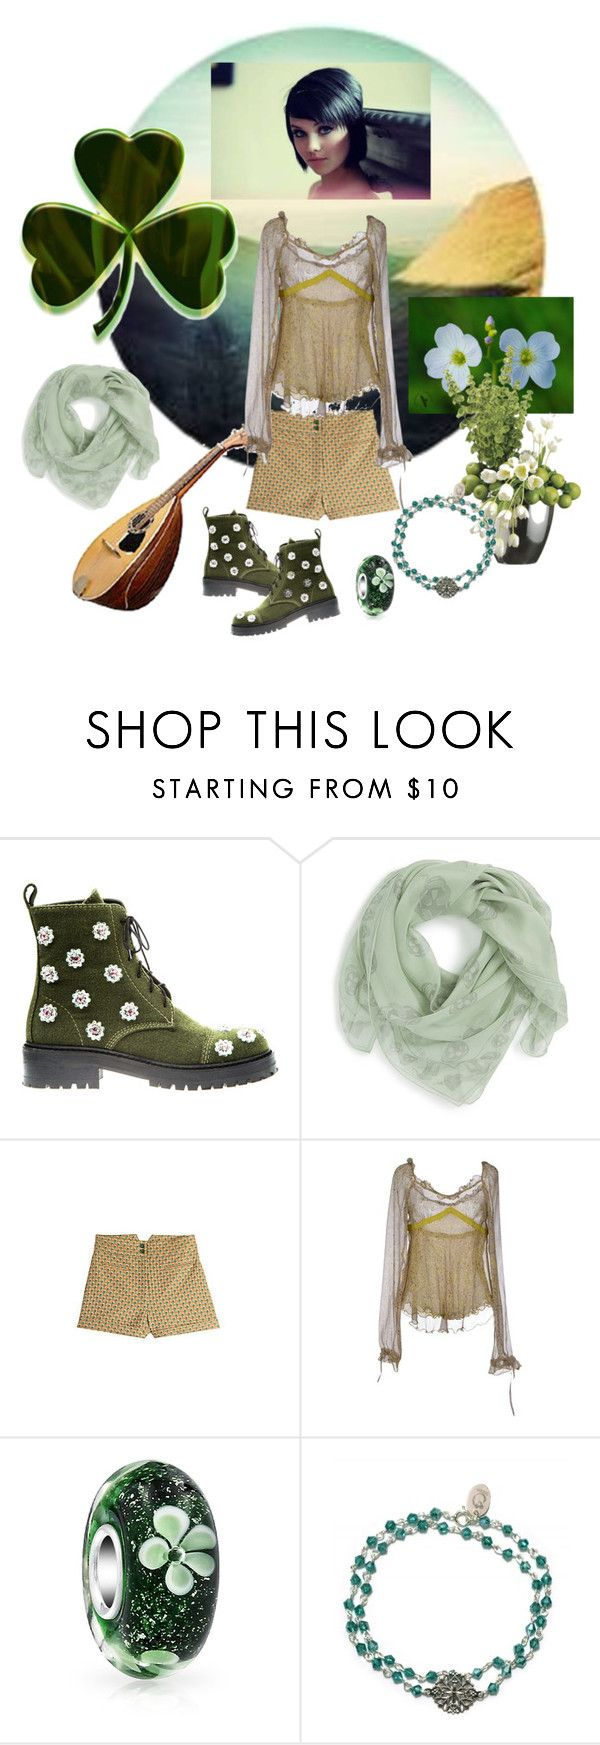 """THE IRISH CHARM"" by yesitsme123 ❤ liked on Polyvore featuring Anouki, Alexander McQueen, Anna Sui, SCERVINO STREET, Bling Jewelry and OSCAR Bijoux"